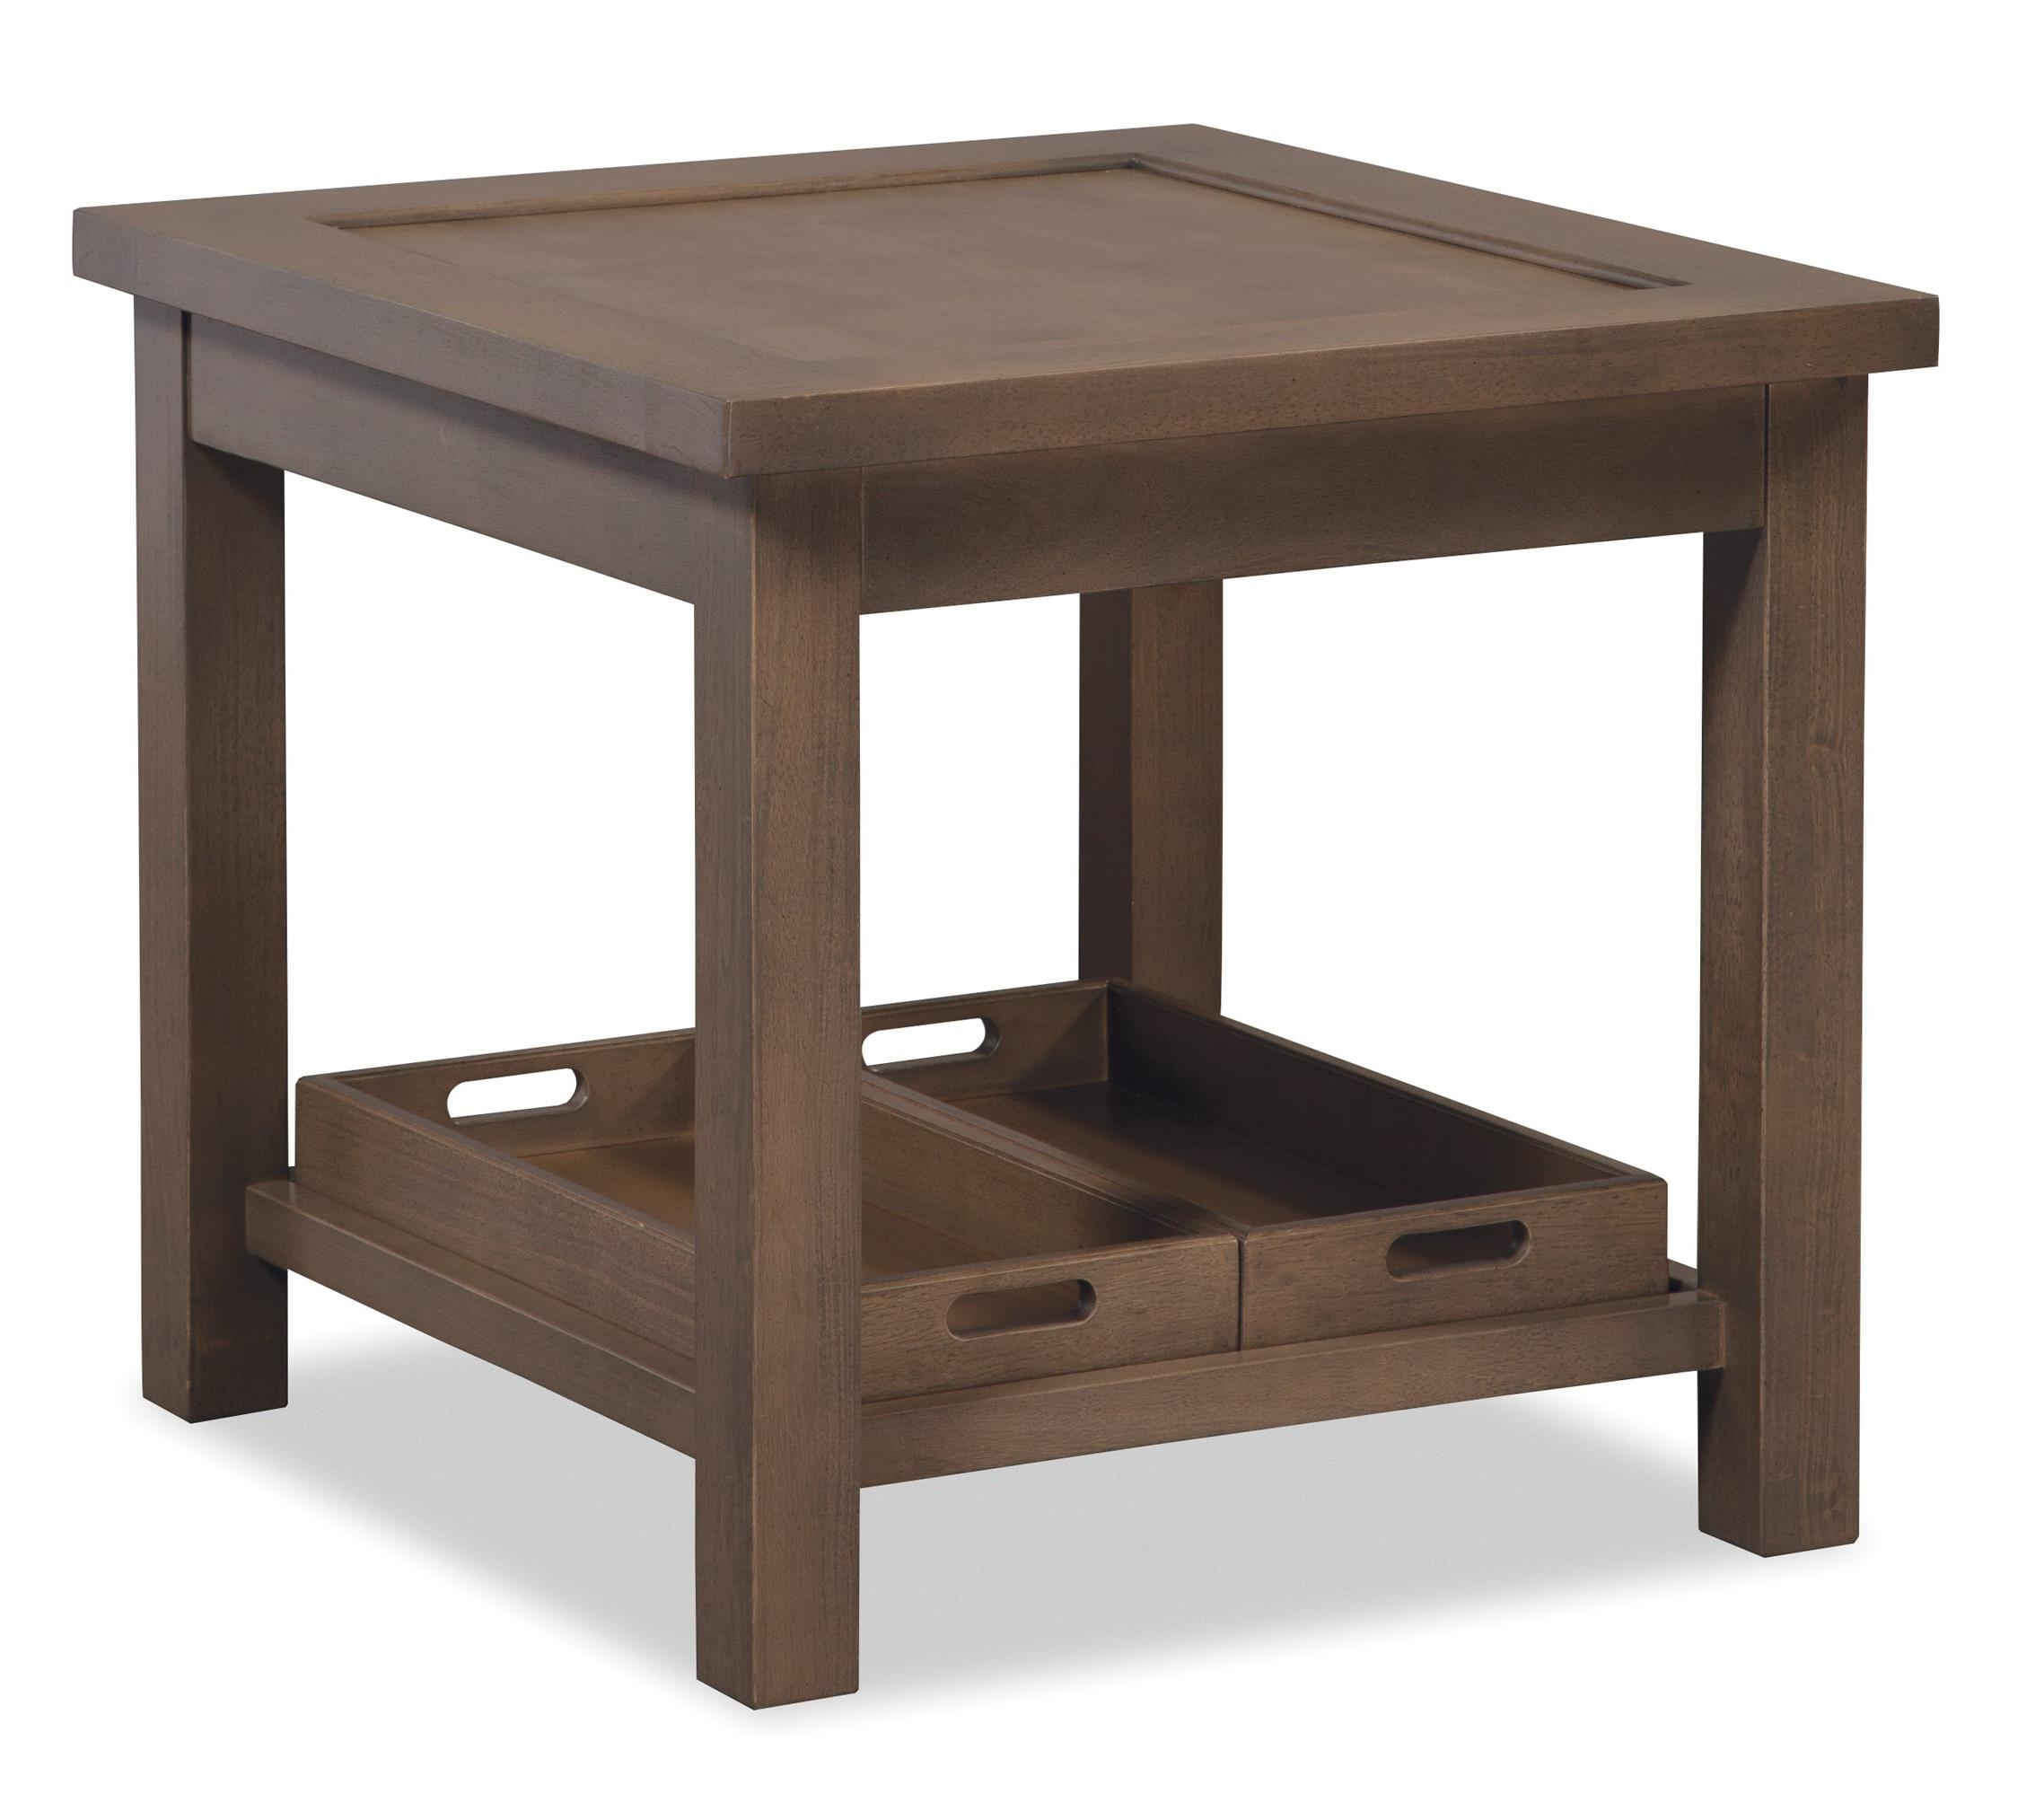 Craftmaster Craftmaster Accent Tables End Table - Item Number: SE345